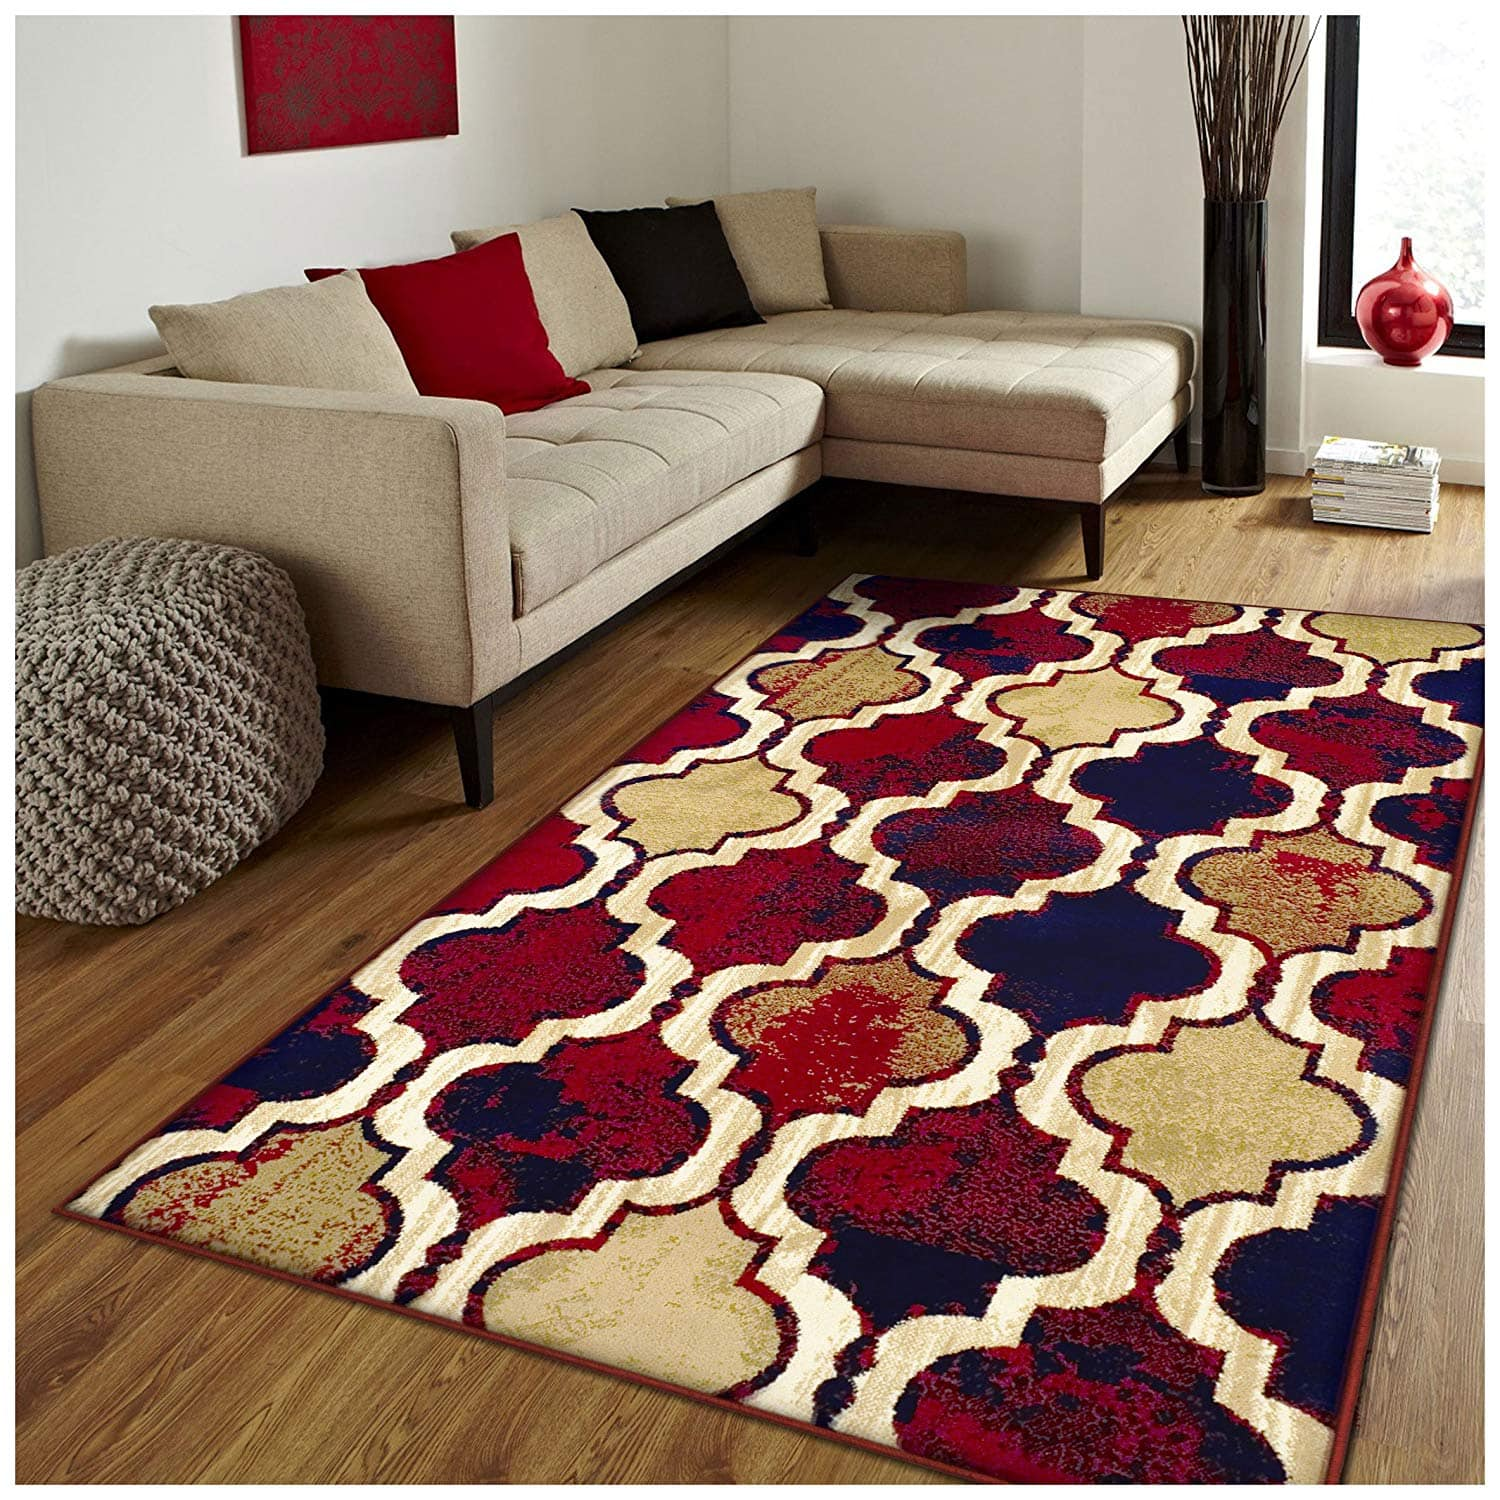 5' x 8' Impressions Zisa Modern Indoor Area Rug (Red/Blue) $36.85 + Free Shipping